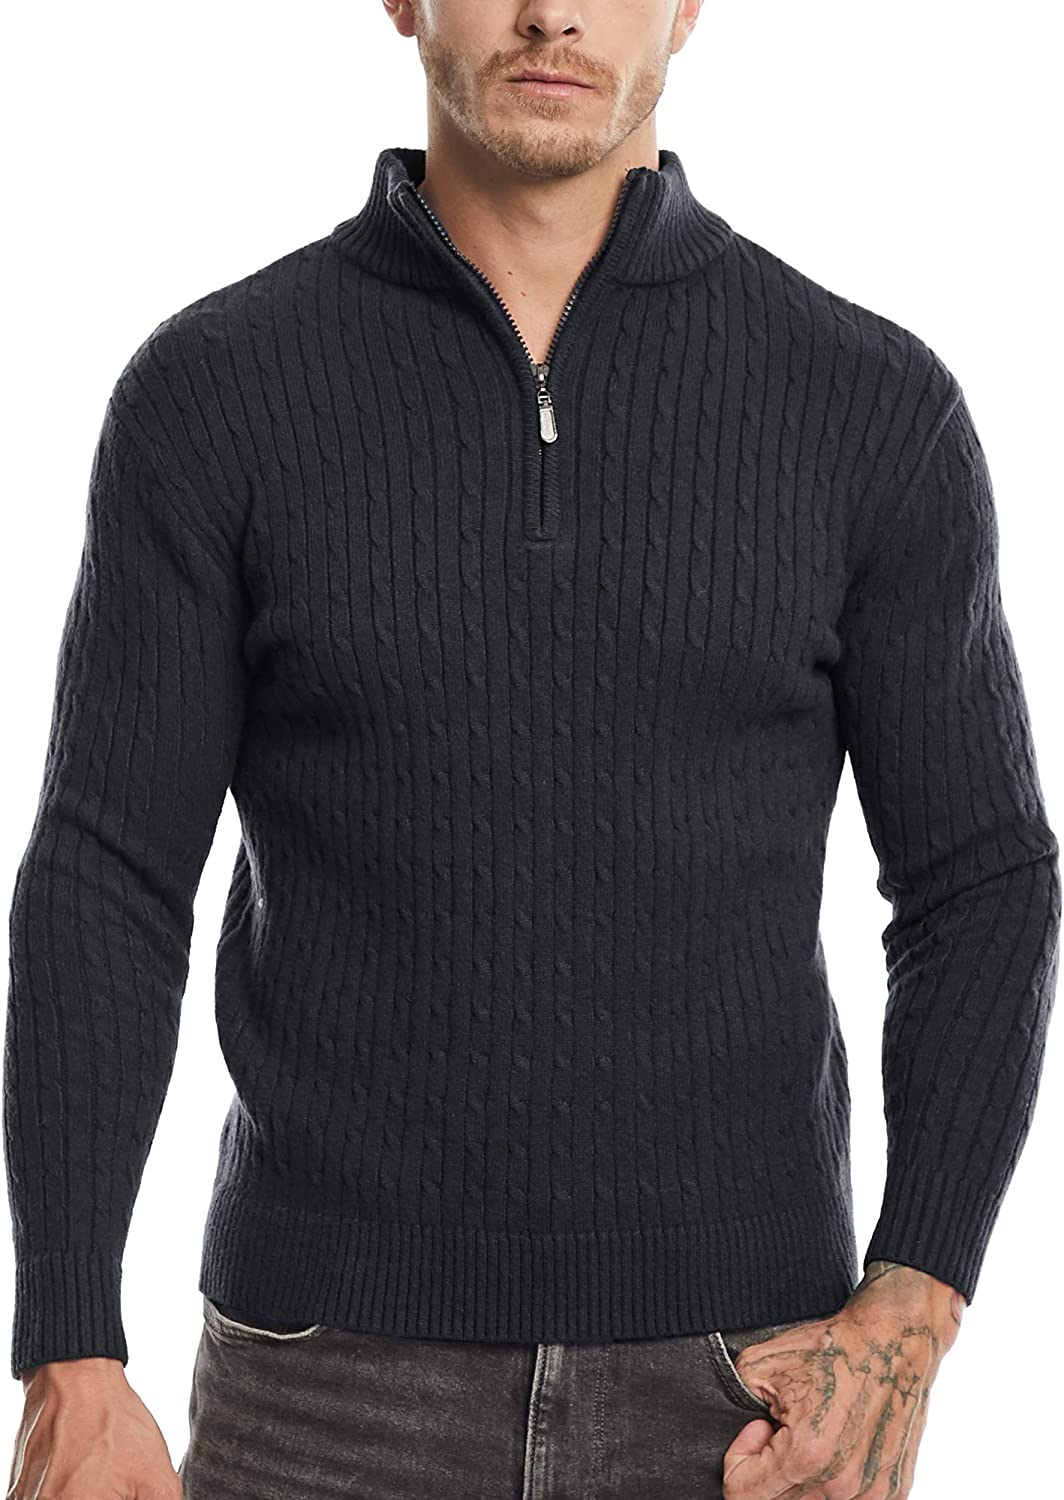 SATINIOR Men's Casual Soft Mesa Mall Knit Long Sleeve Zip Mock Up Nec New product type